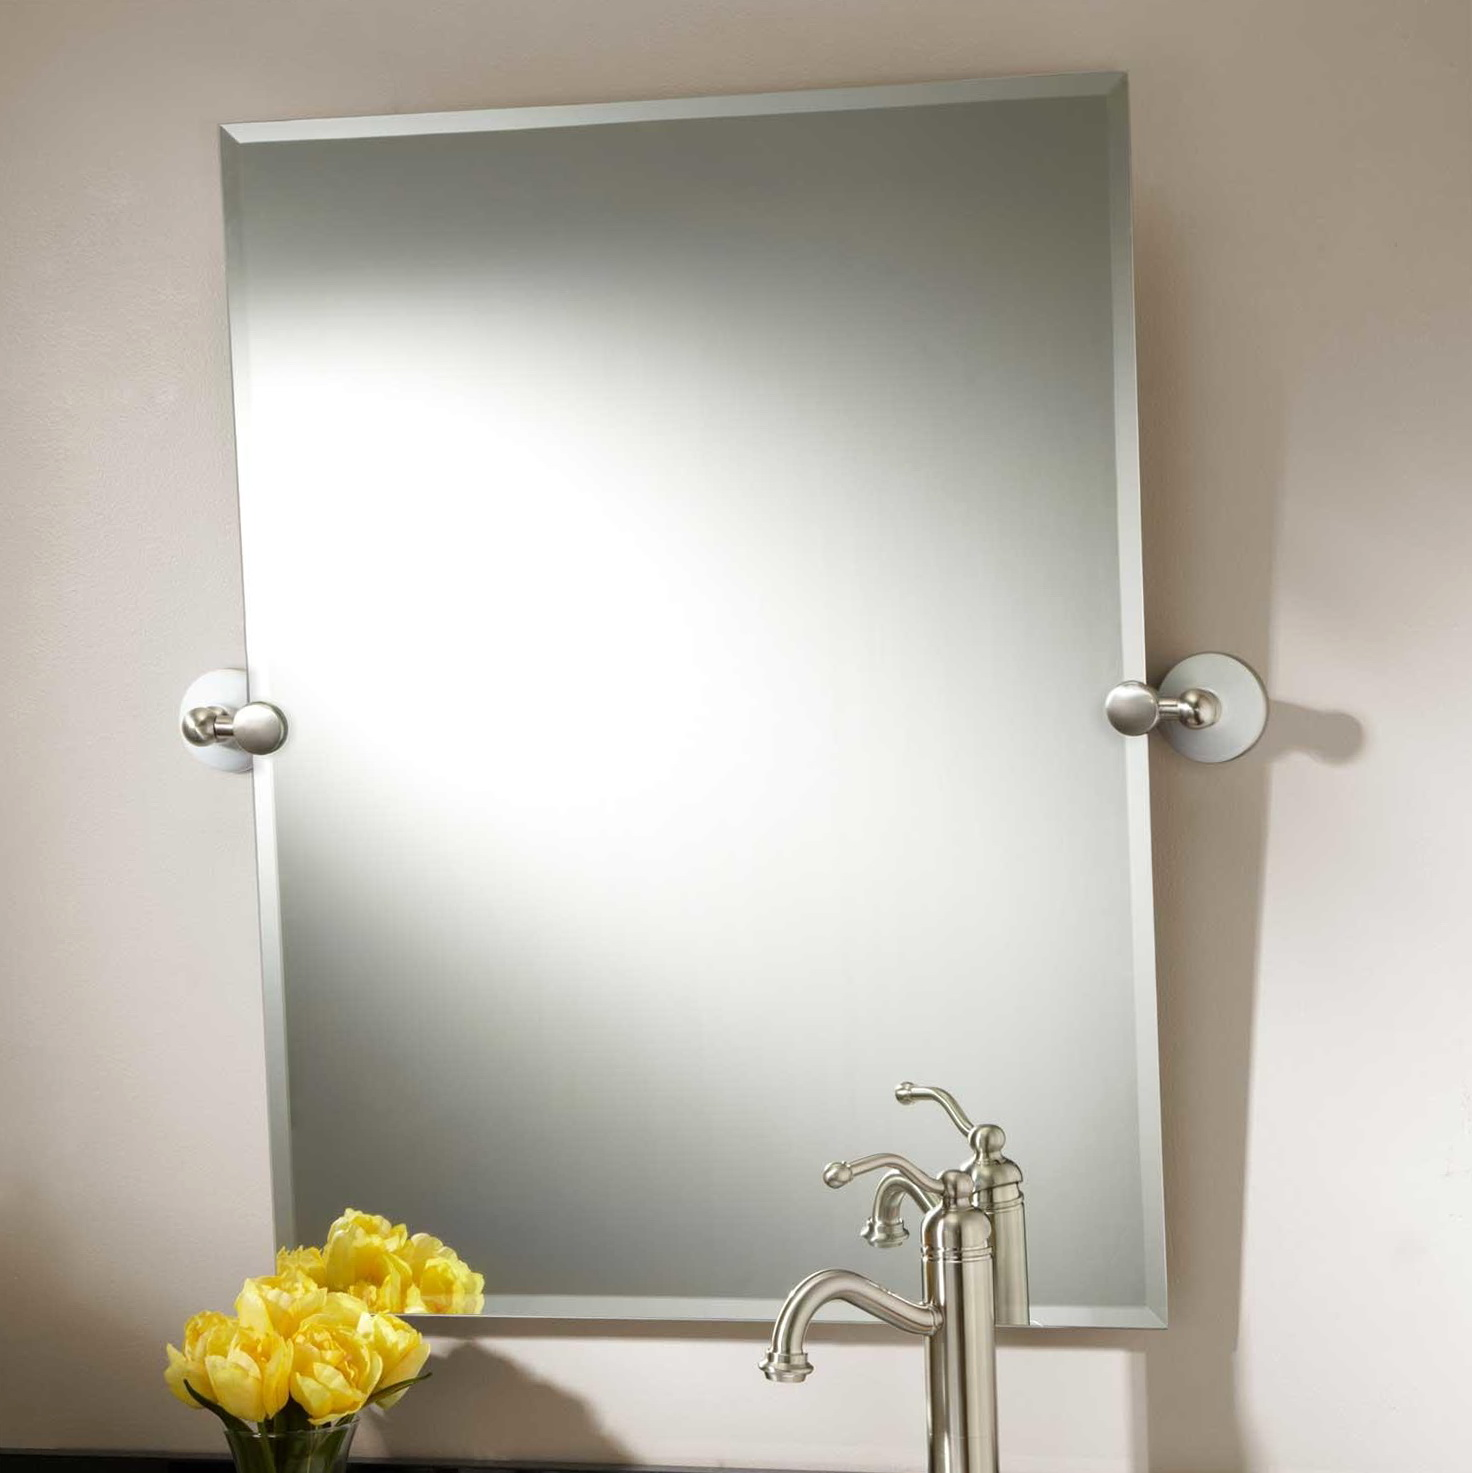 Brushed Nickel Framed Bathroom Mirror  Home Design Ideas